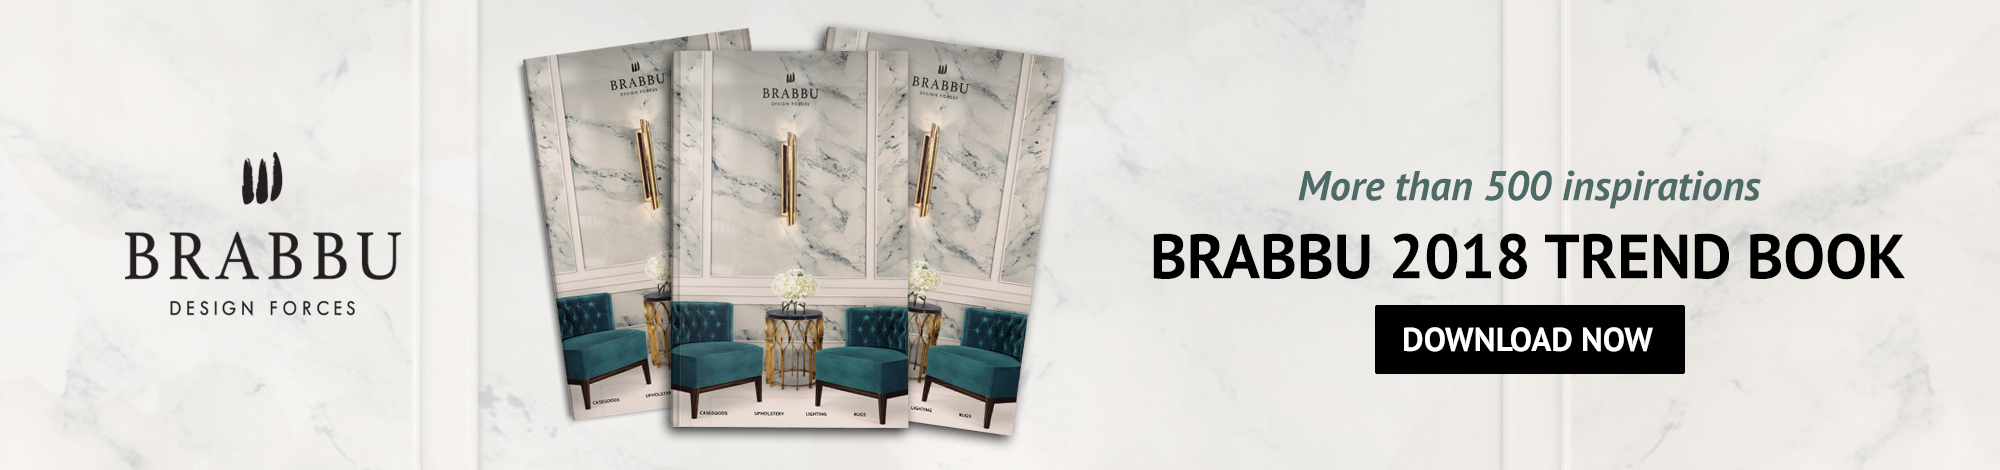 craftsmanship Celebrate Design and Craftsmanship with BRABBU catalog 1